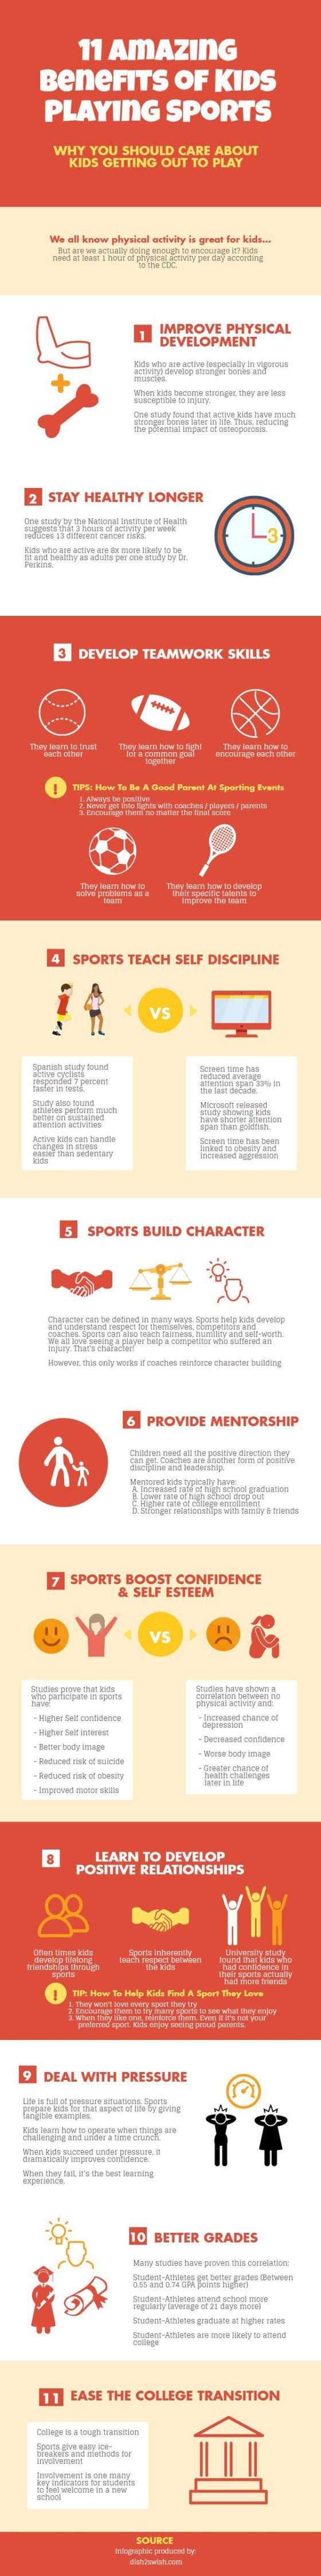 Infographic : 11 Amazing Benefits of Kids Playing Youth Sports